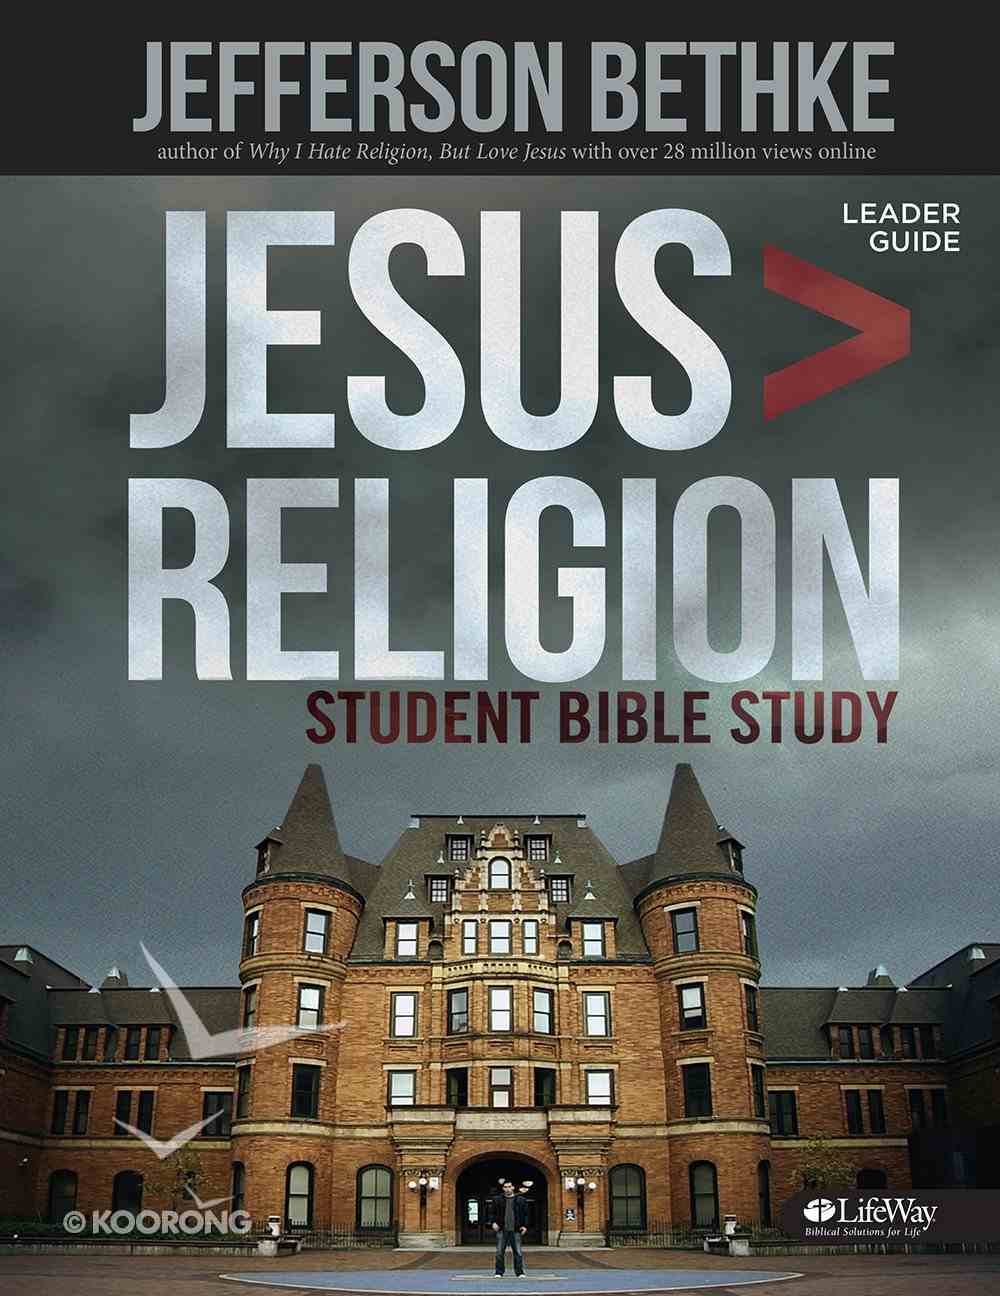 Jesus Greater Than Religion Student Edition (Leader Guide) Paperback